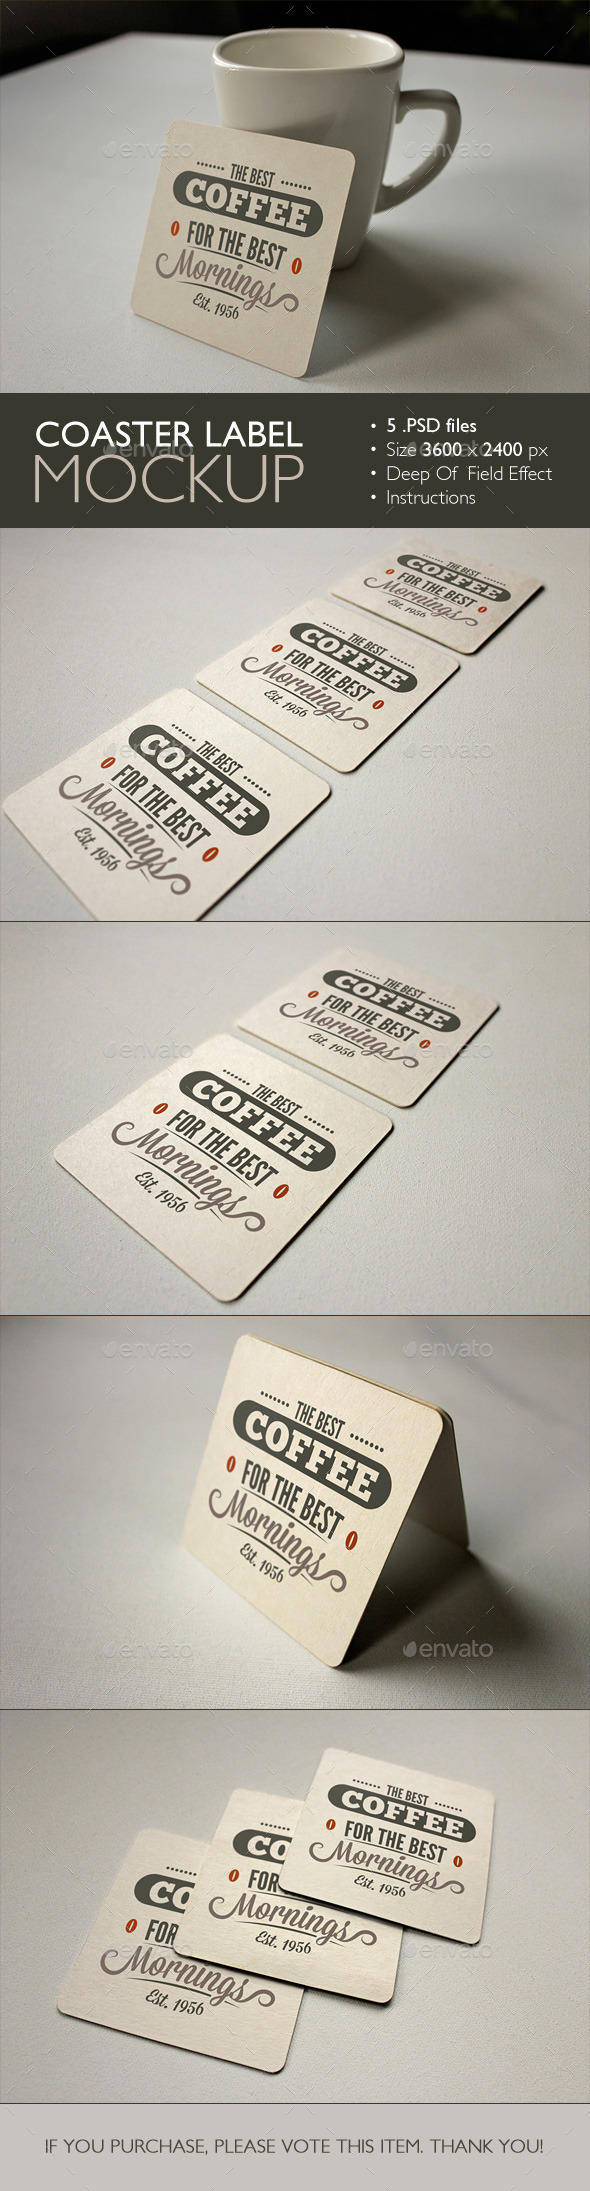 Coaster label mockup by grapulo graphicriver for Coaster size template